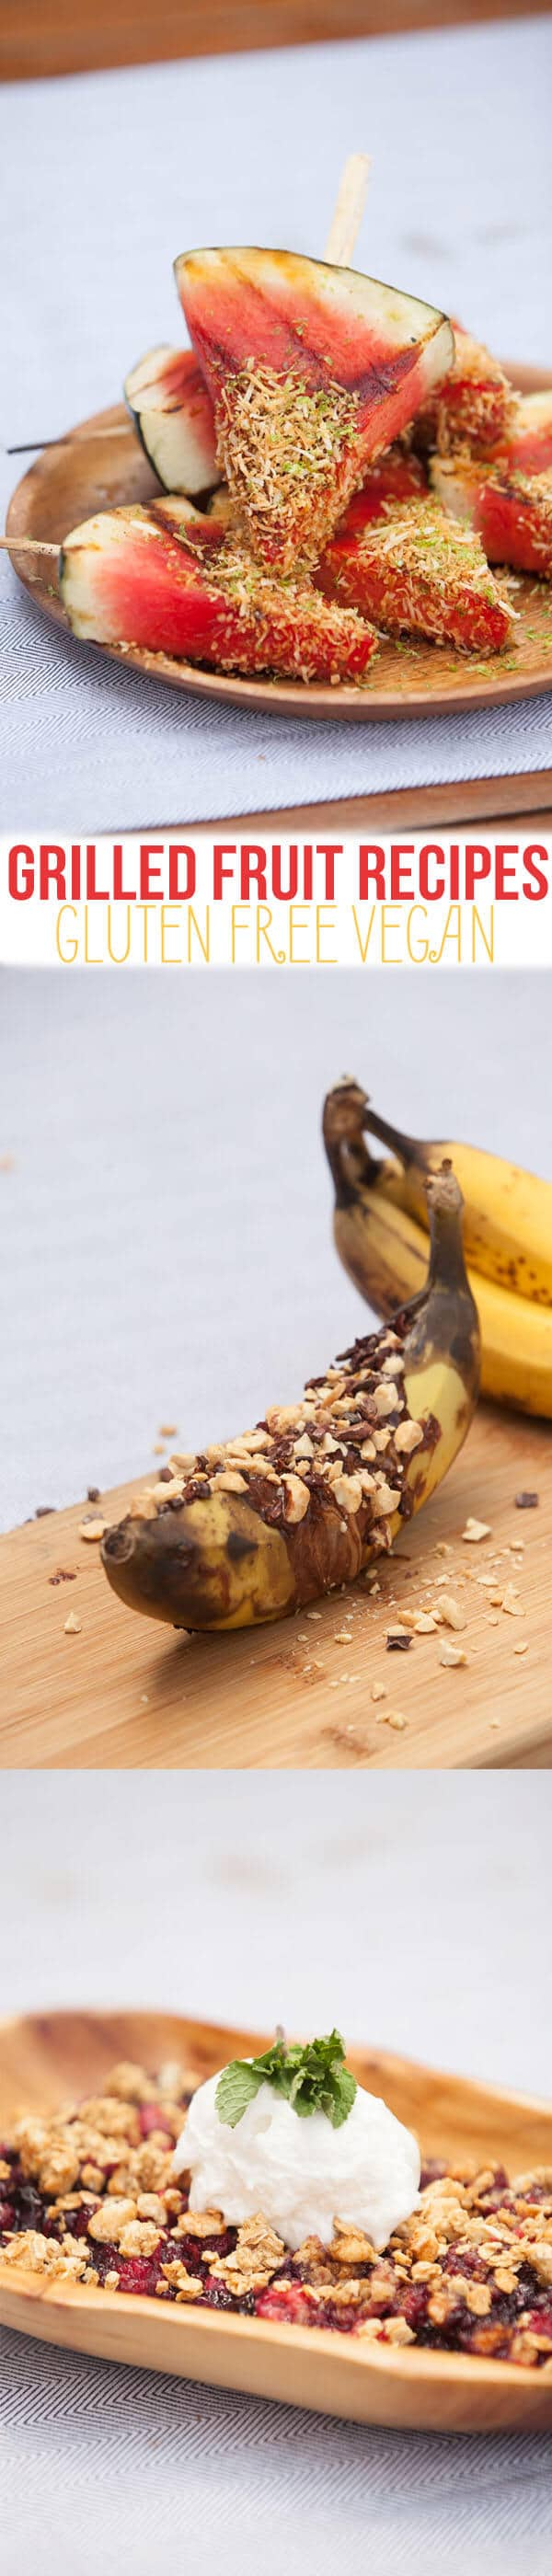 I share my favourite three gluten free vegan grilled fruit recipes featuring chocolate peanut banana boats, coconut dipped watermelon on a stick, and berry cobbler with coconut cream!